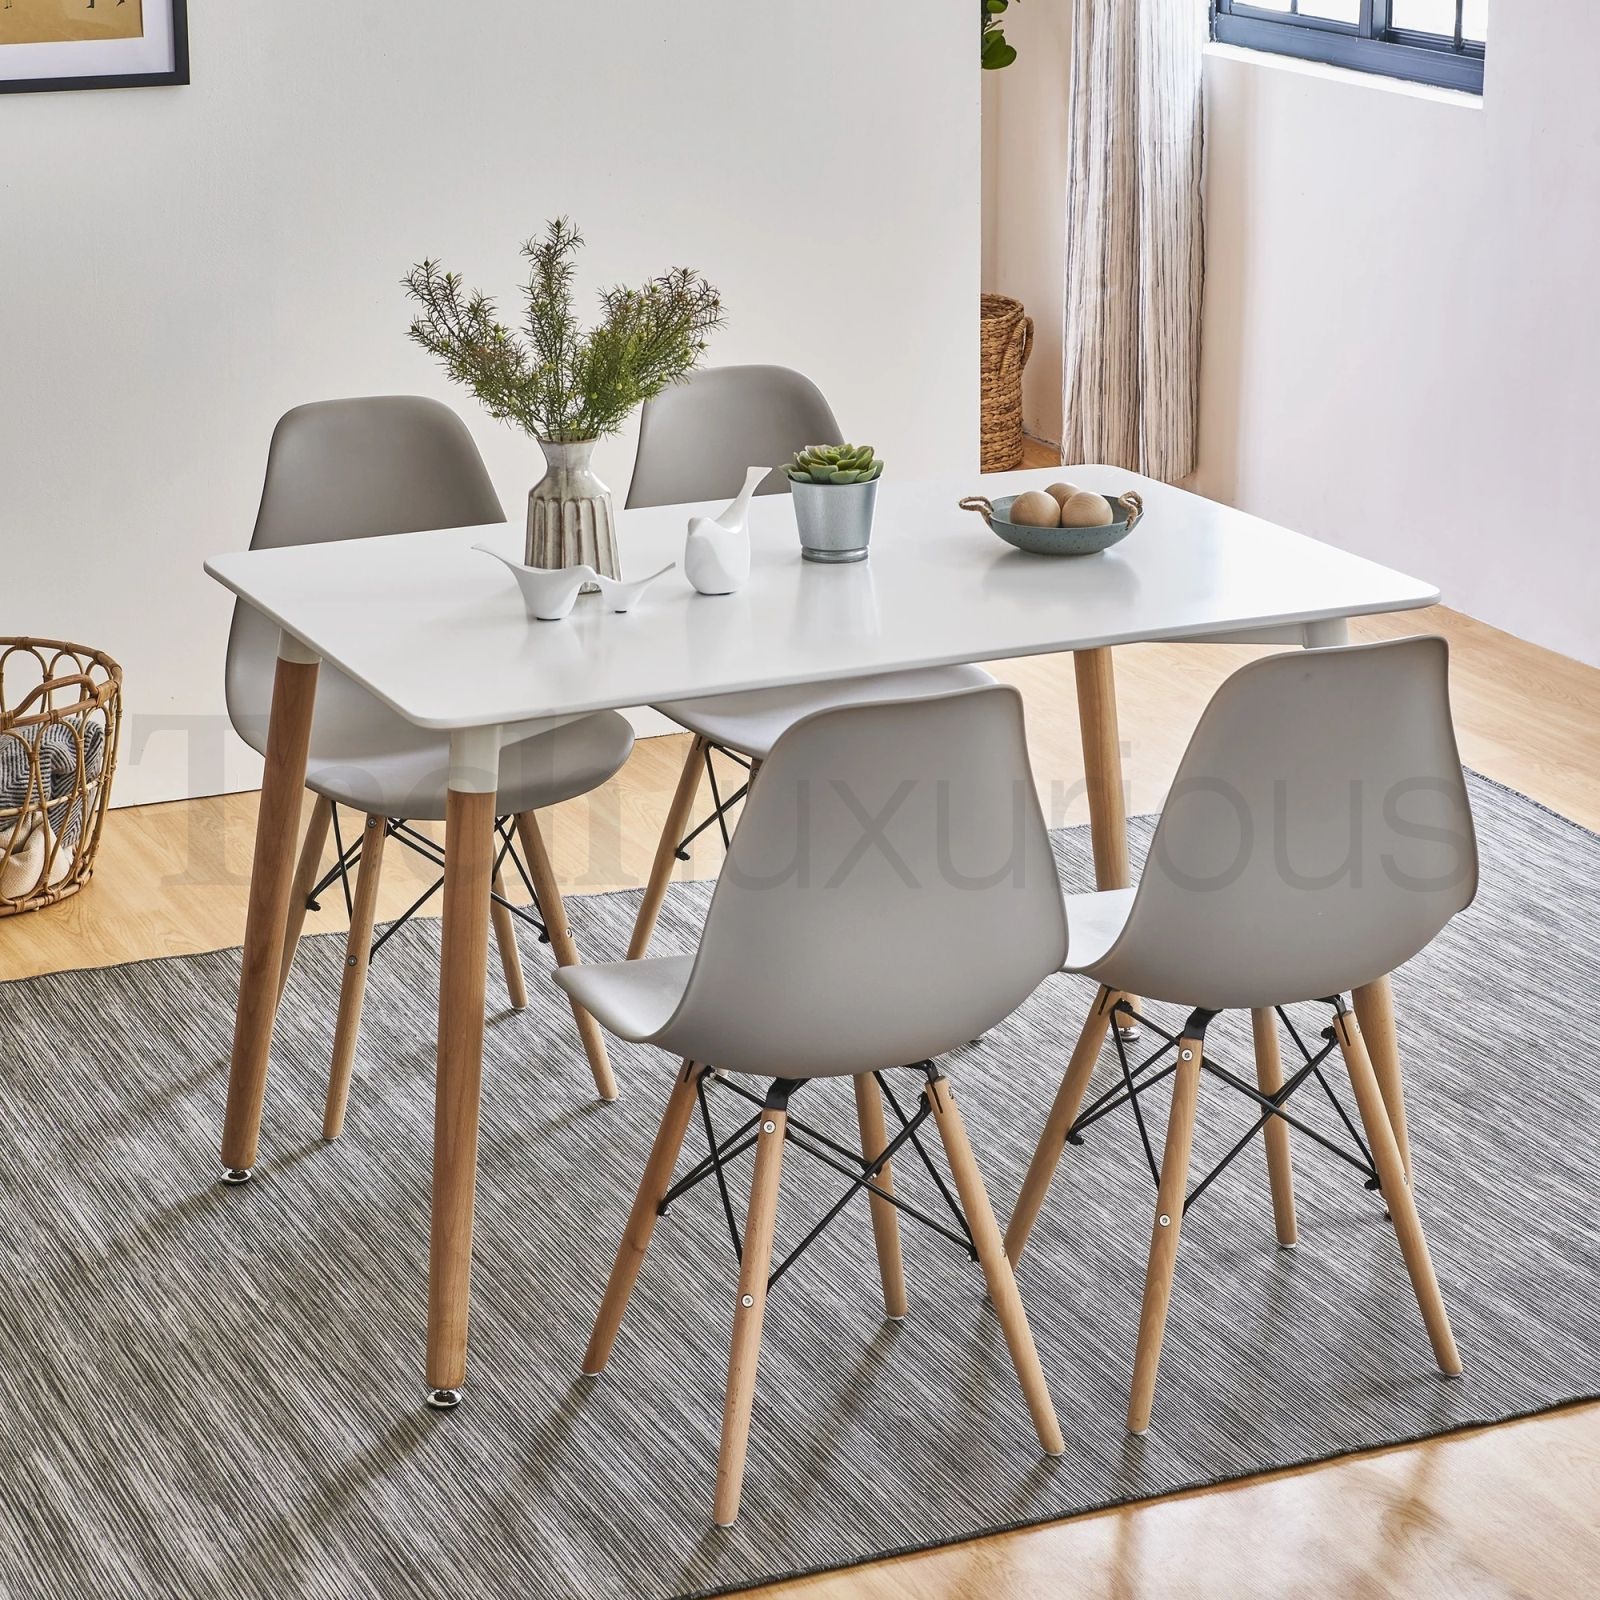 Phenomenal Details Zu Retro Dining Table And Chairs 4 Or 6 Set Wooden Legs Room Kitchen Lounge Chair Gmtry Best Dining Table And Chair Ideas Images Gmtryco